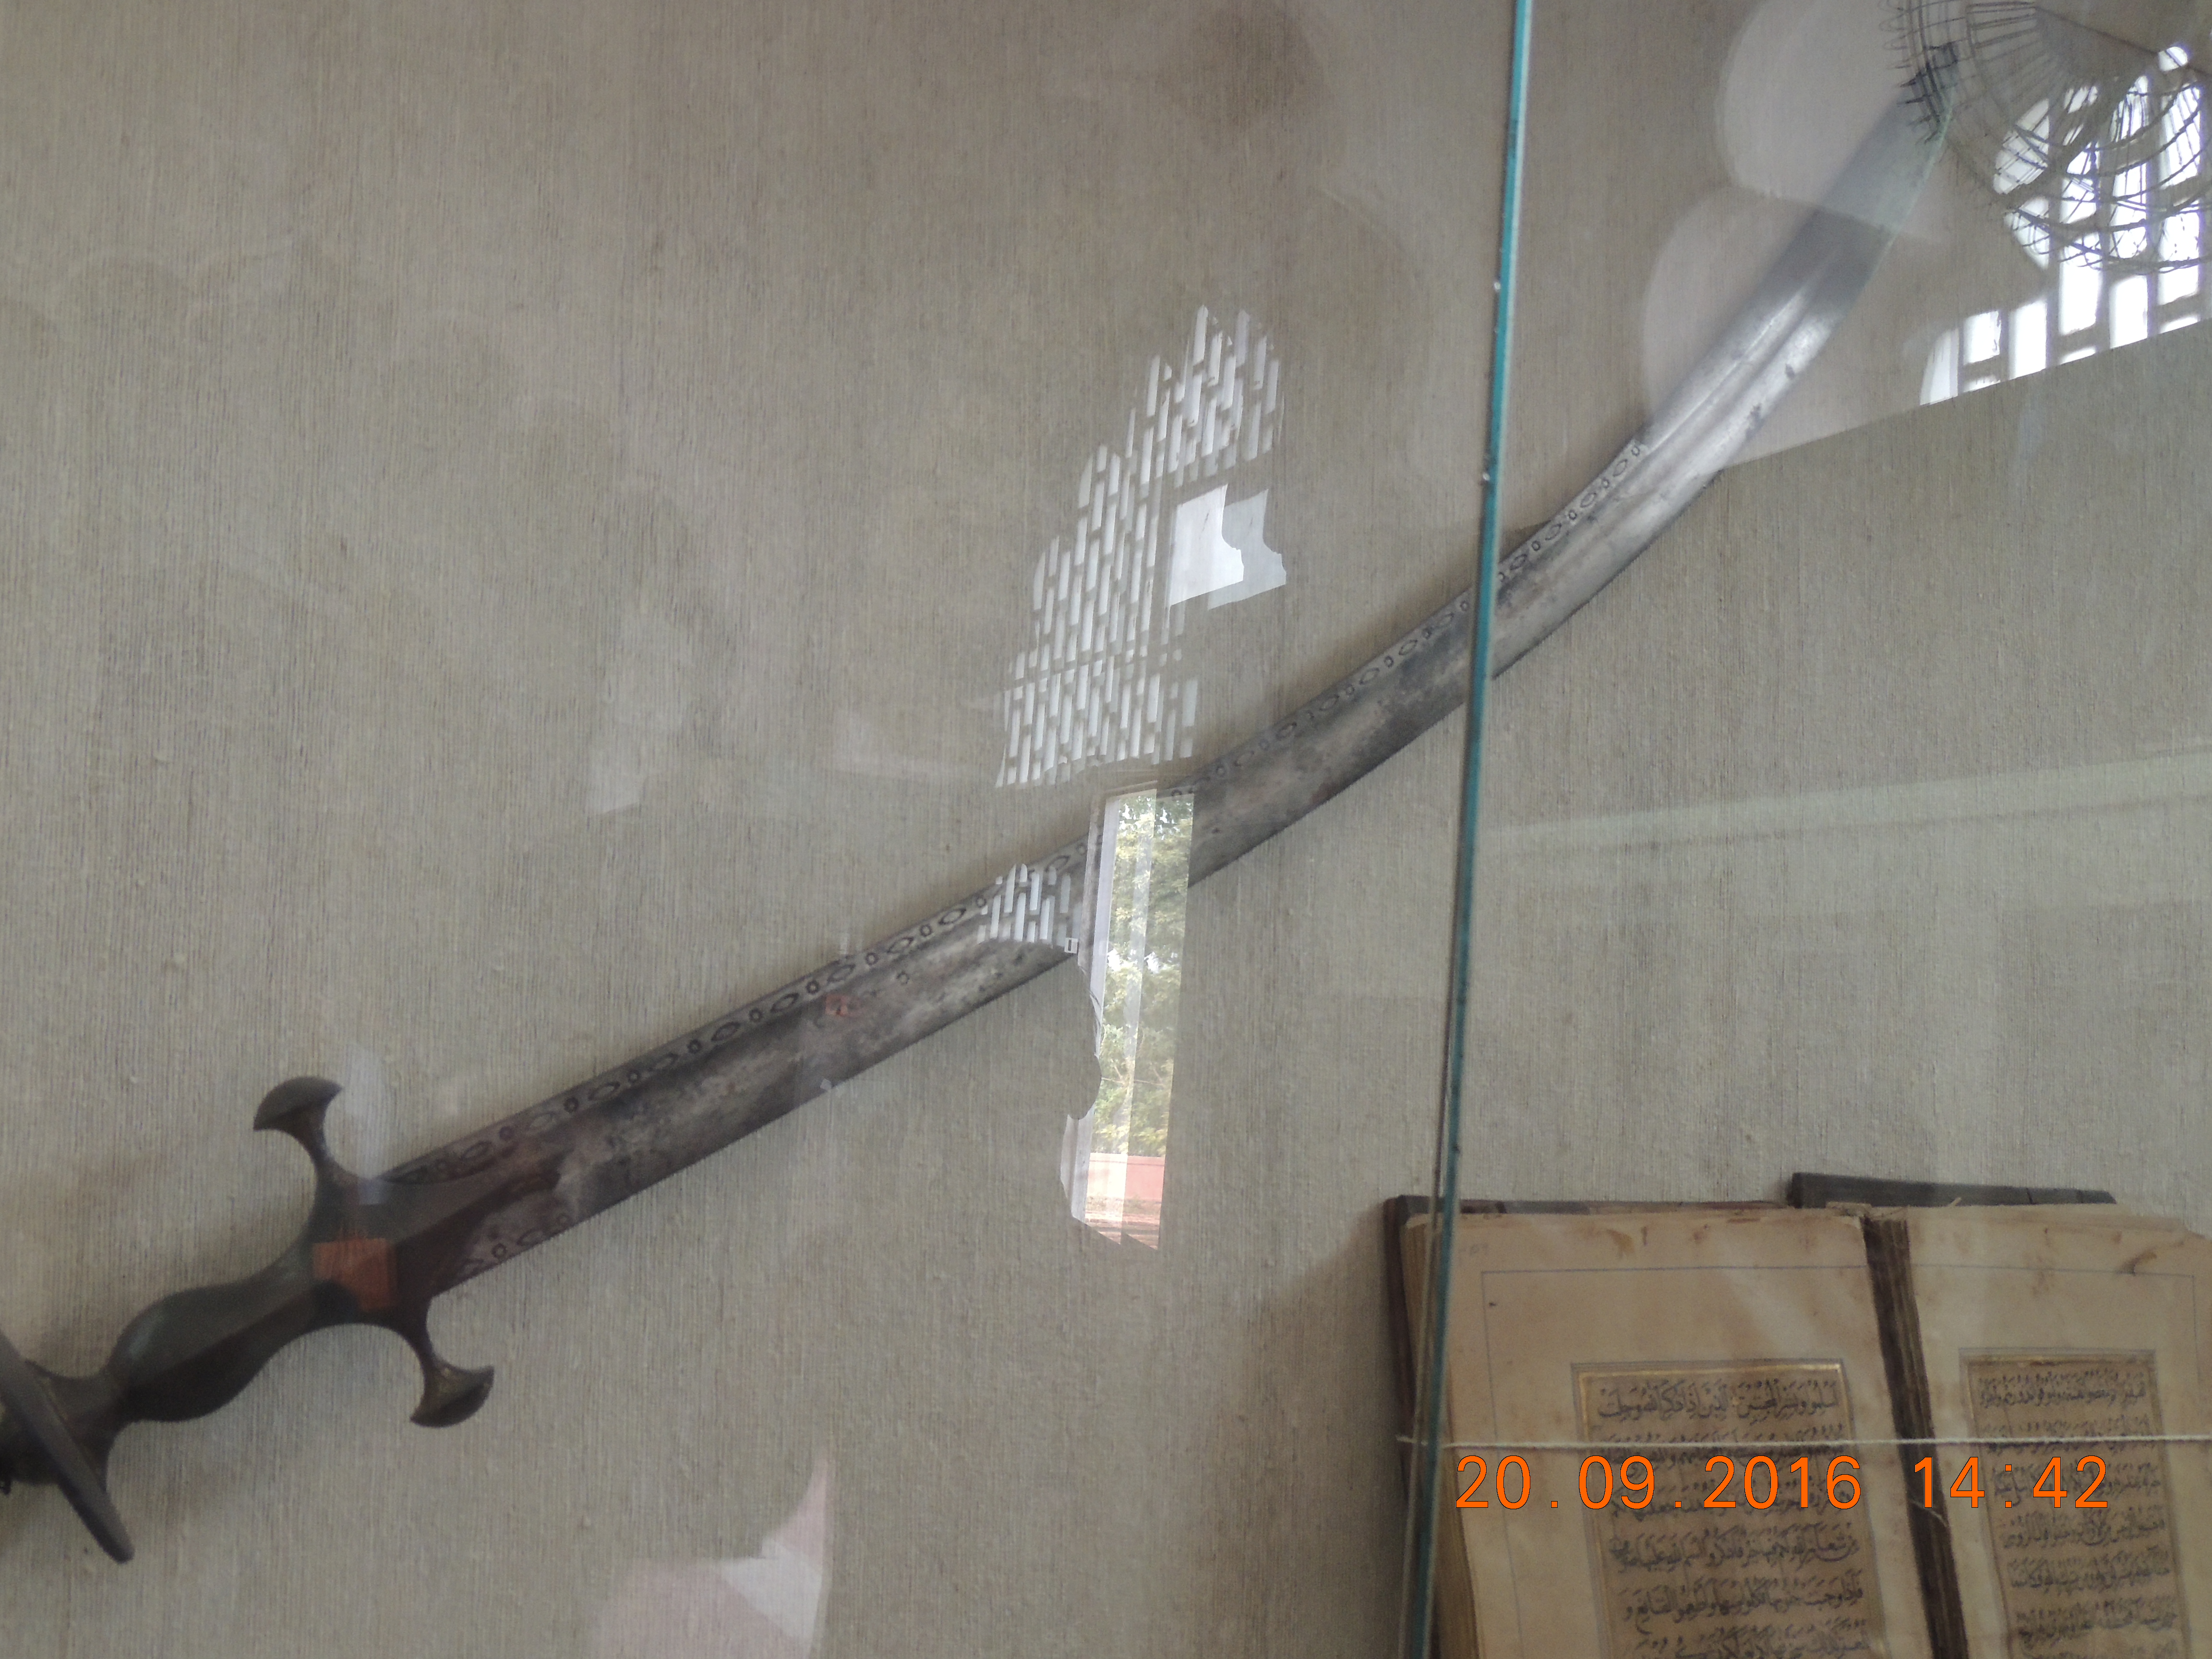 The sword used during wars.